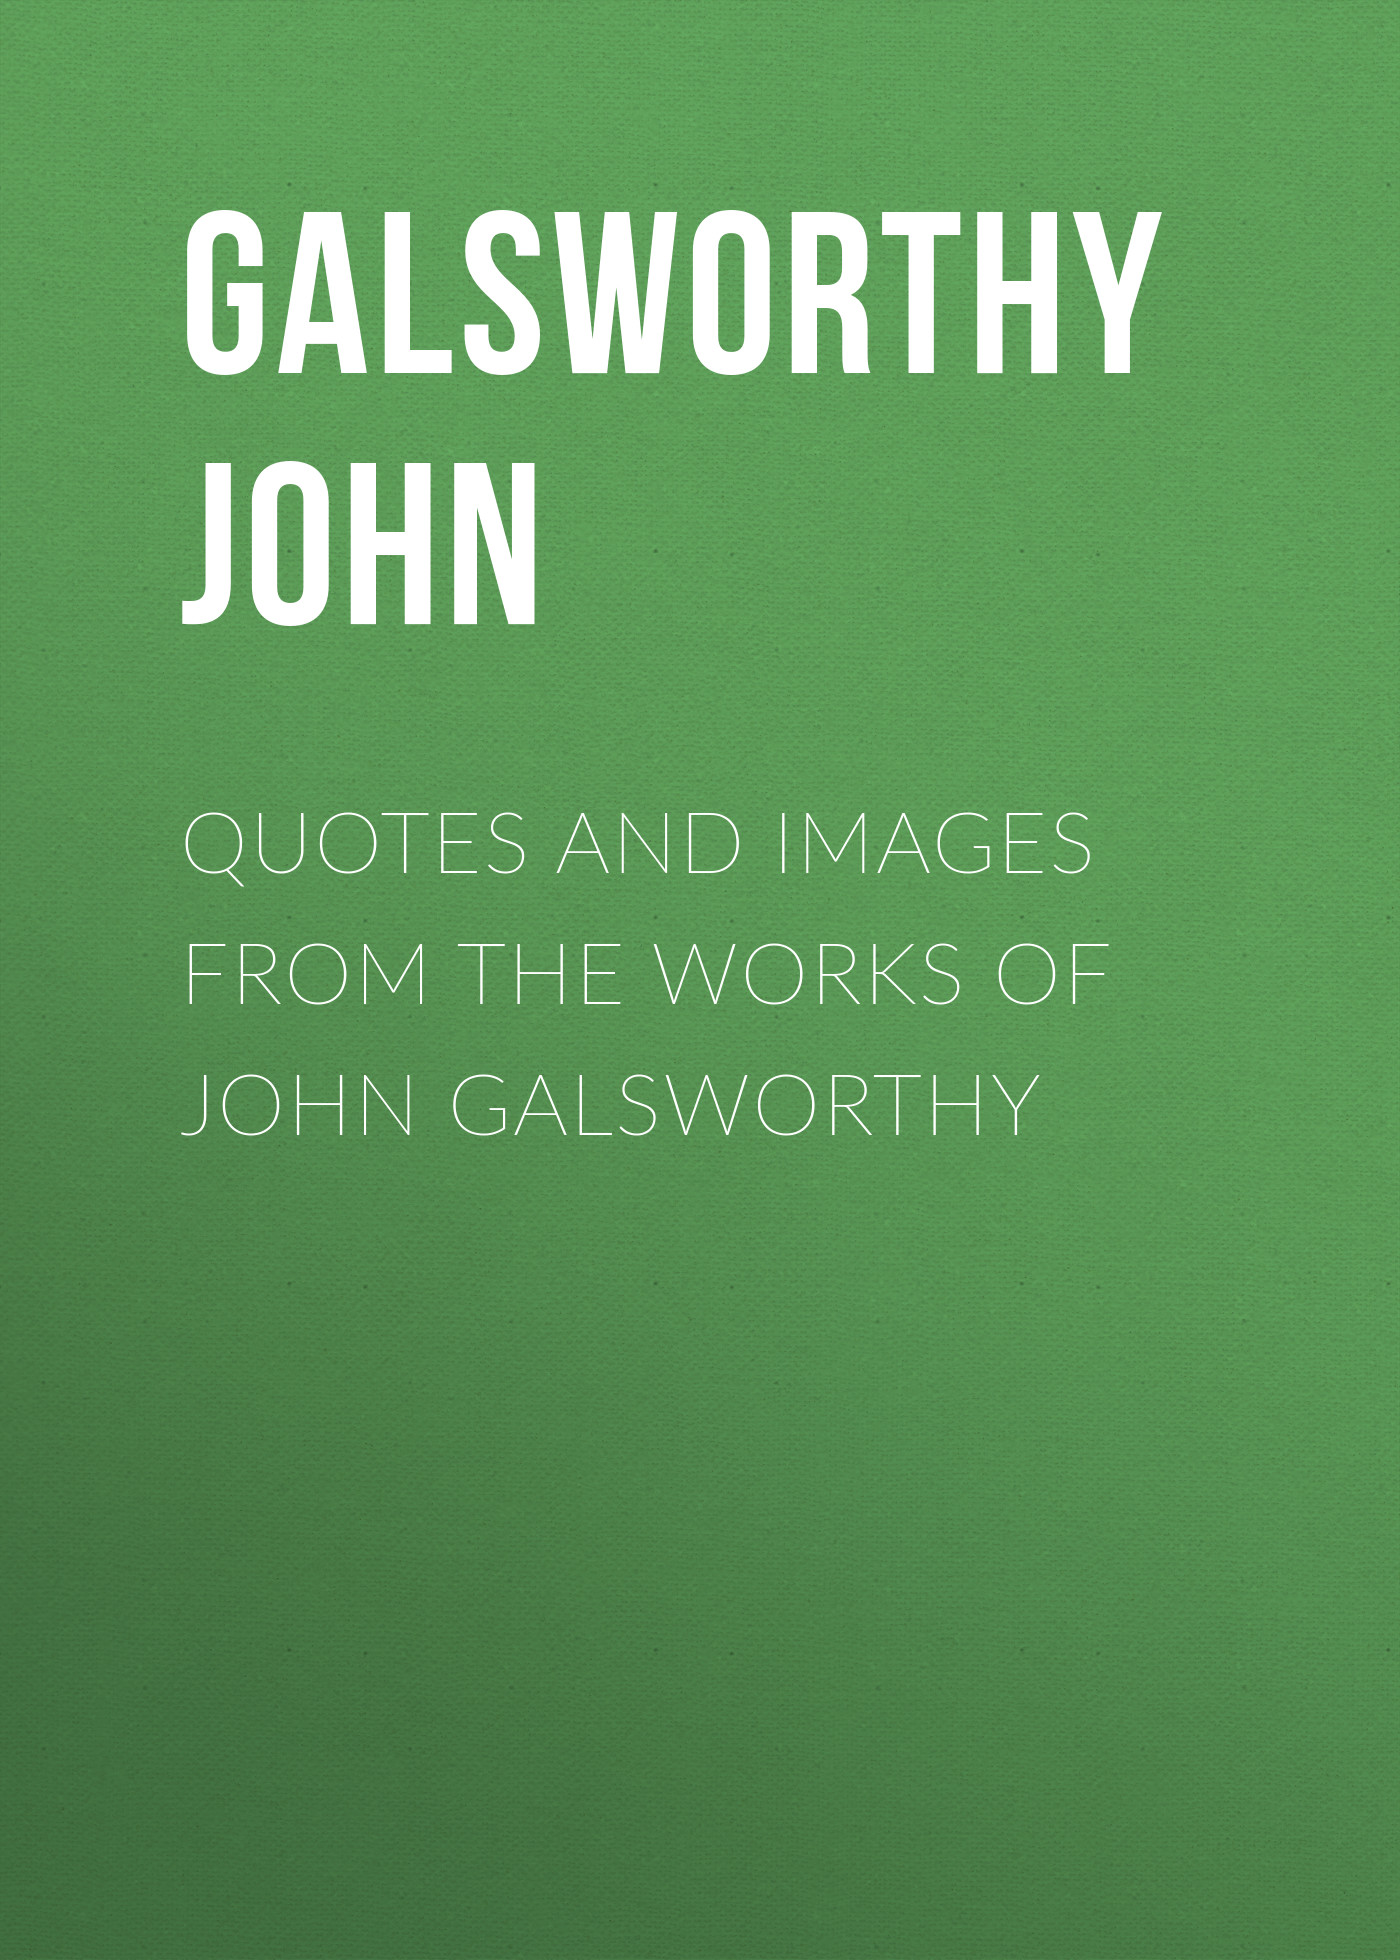 Galsworthy John Quotes and Images From the Works of John Galsworthy john galsworthy five tales